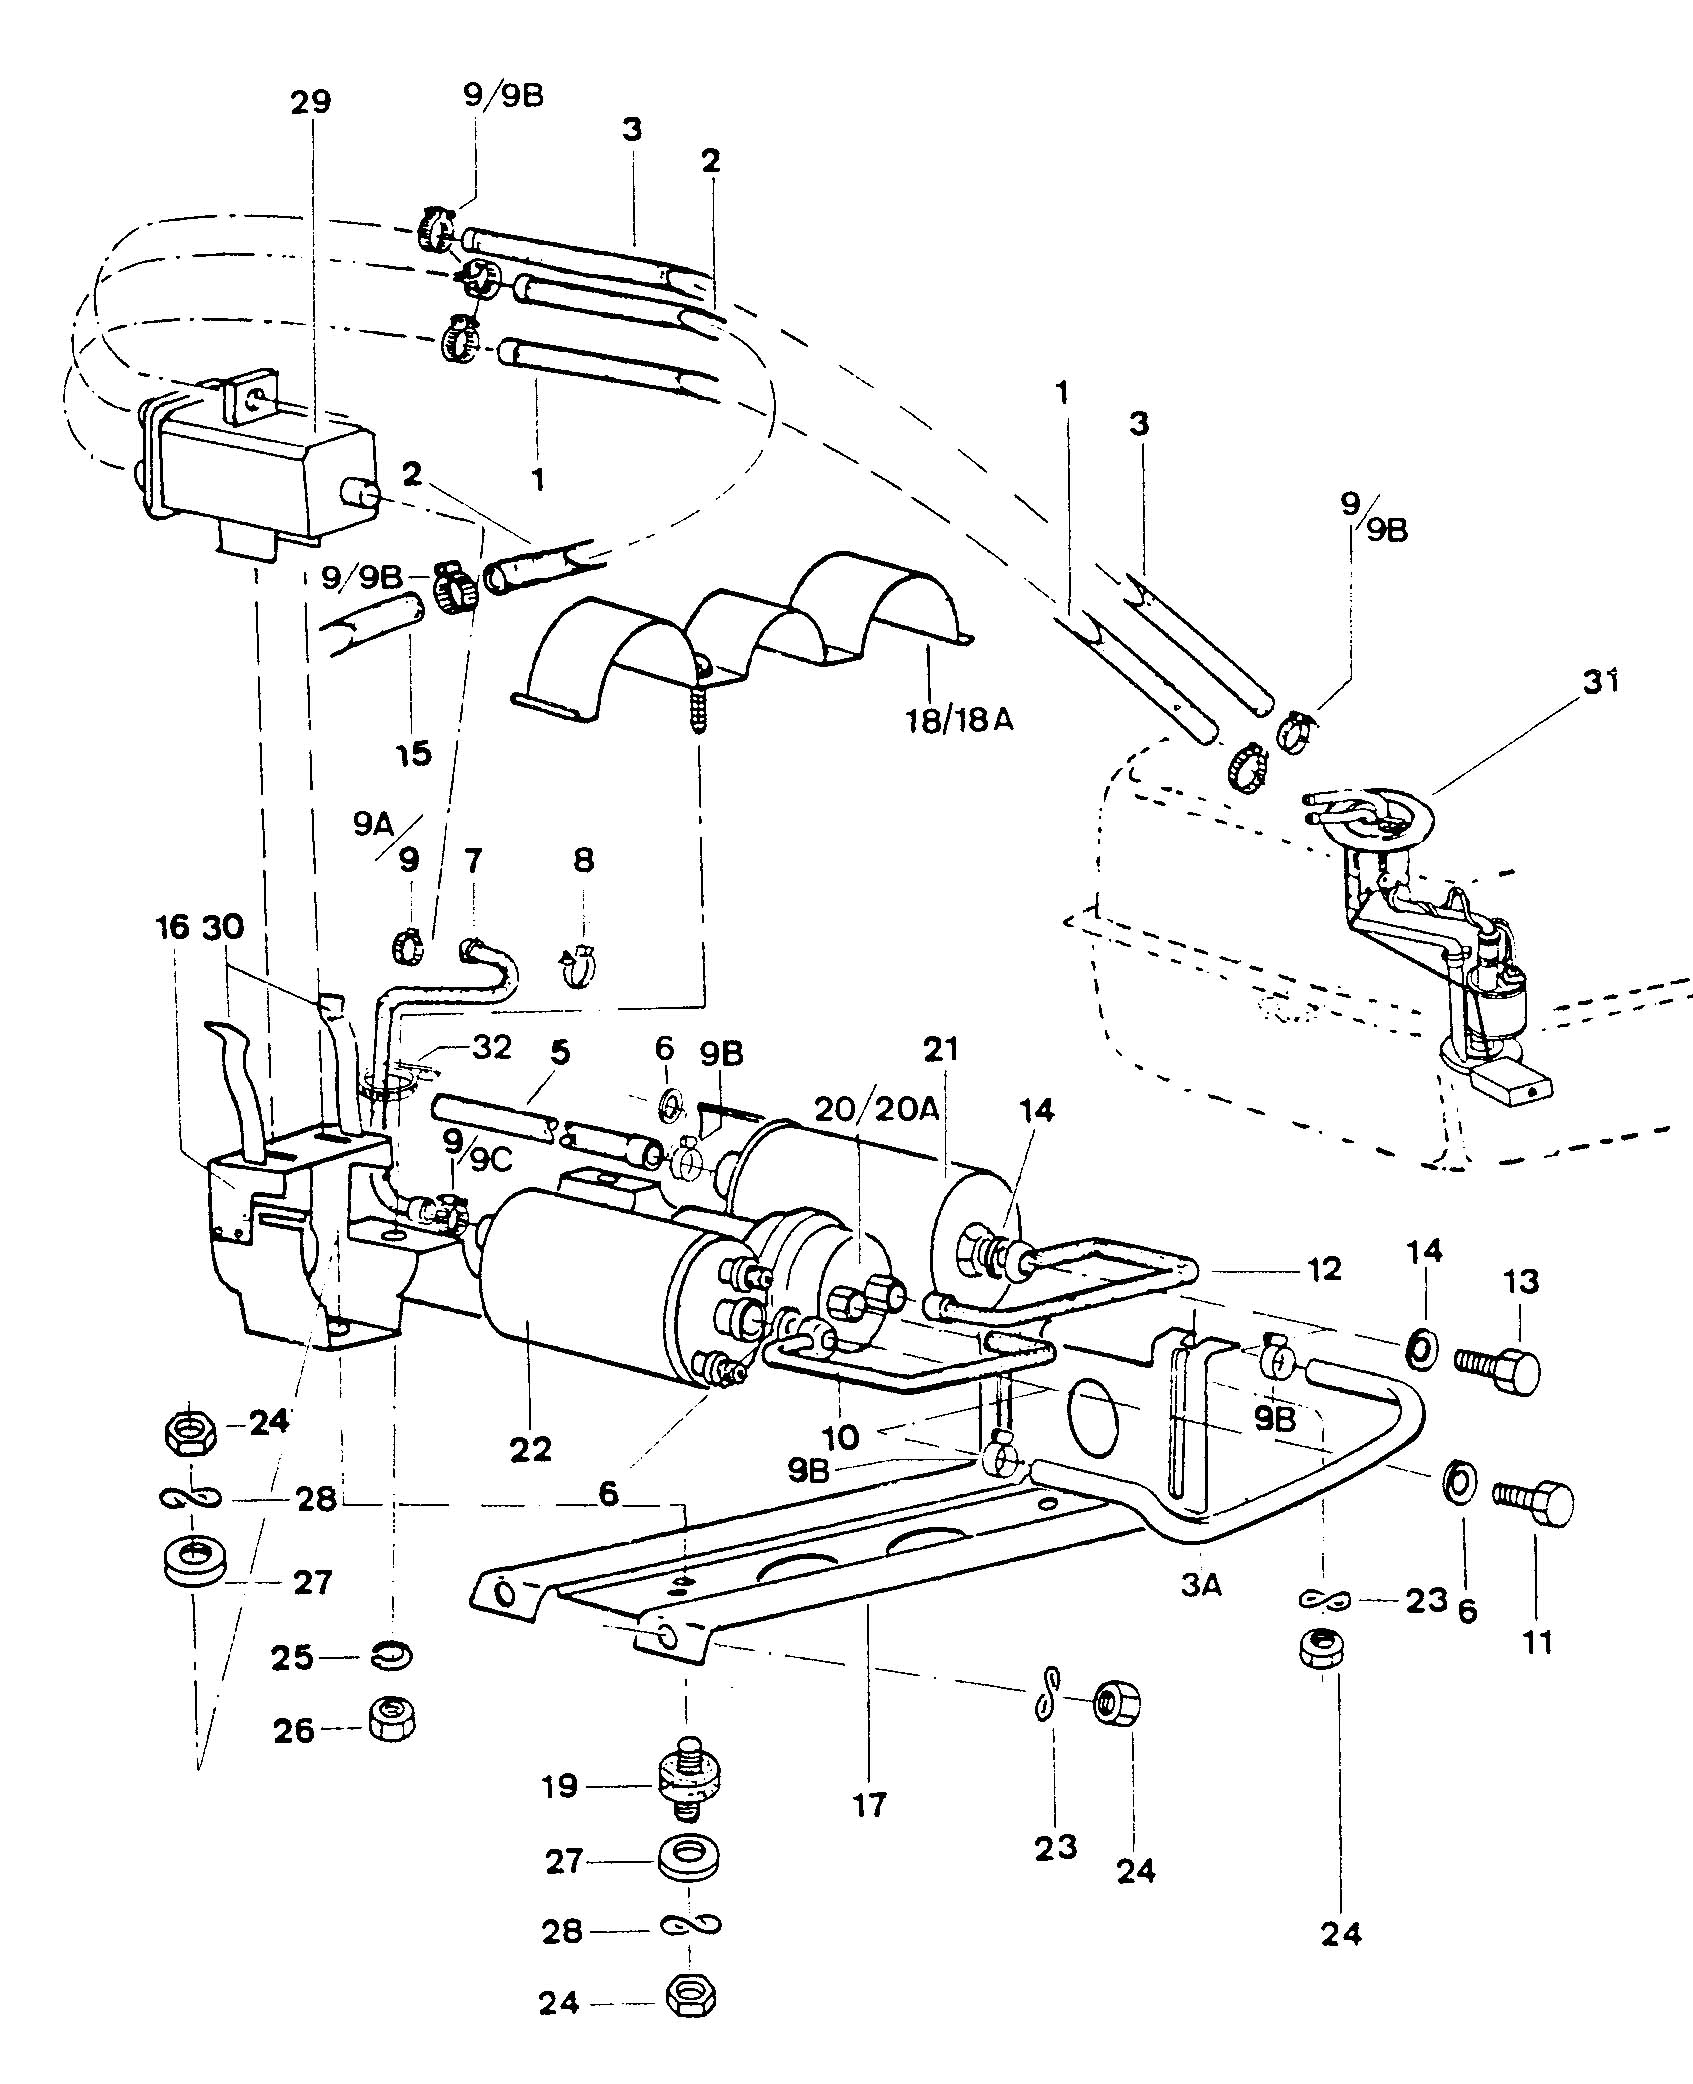 1990 Vw Jettum Wiring Diagram